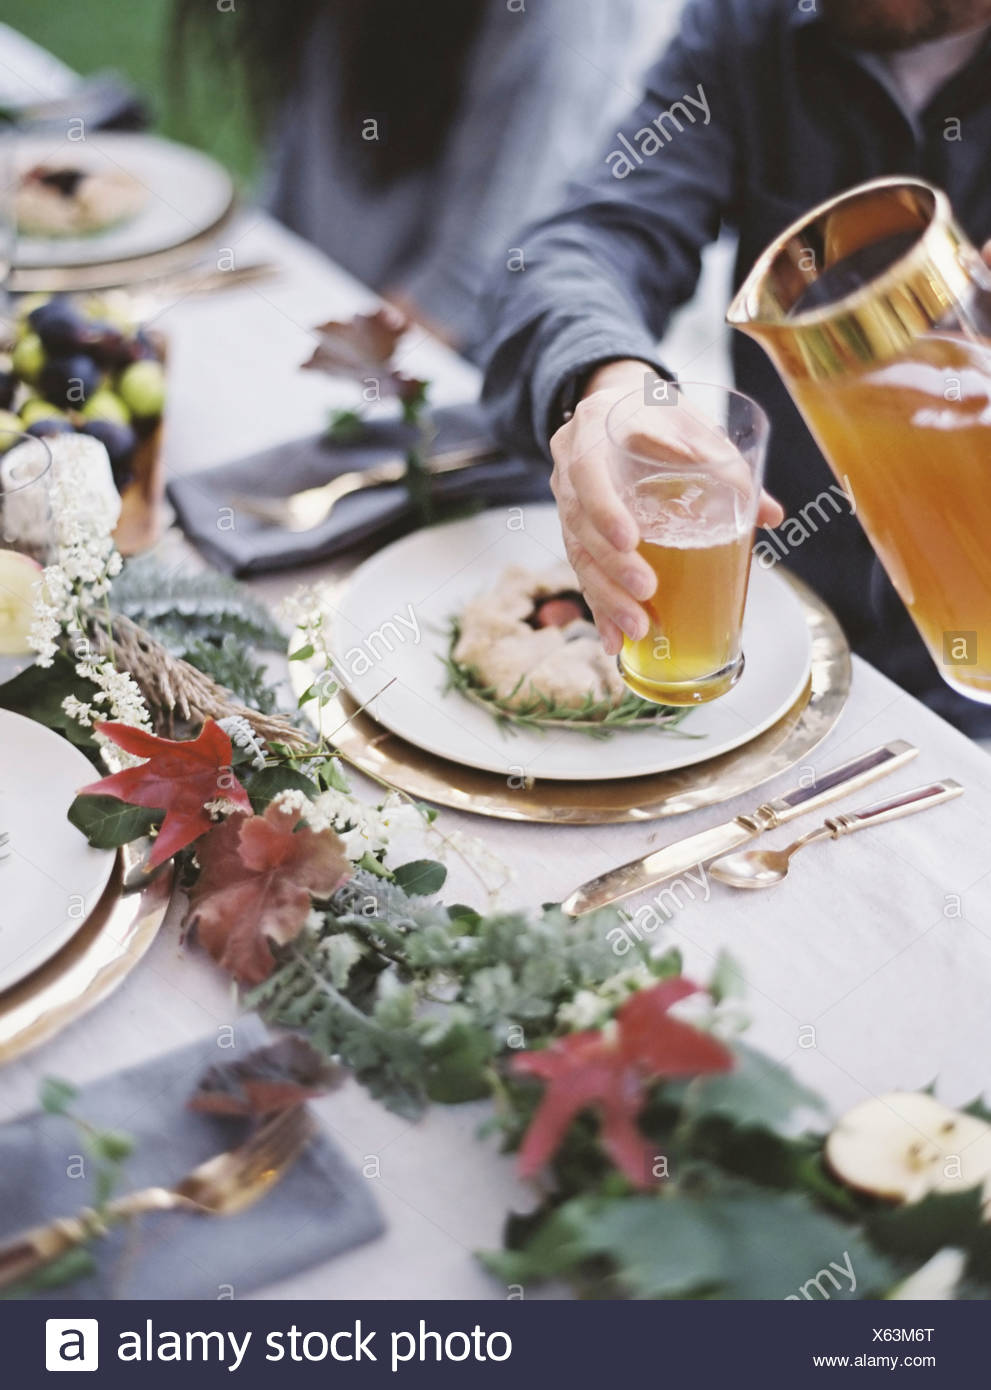 A celebration meal with table settings and leafy decorations A person pouring drinks into glasses - Stock Image